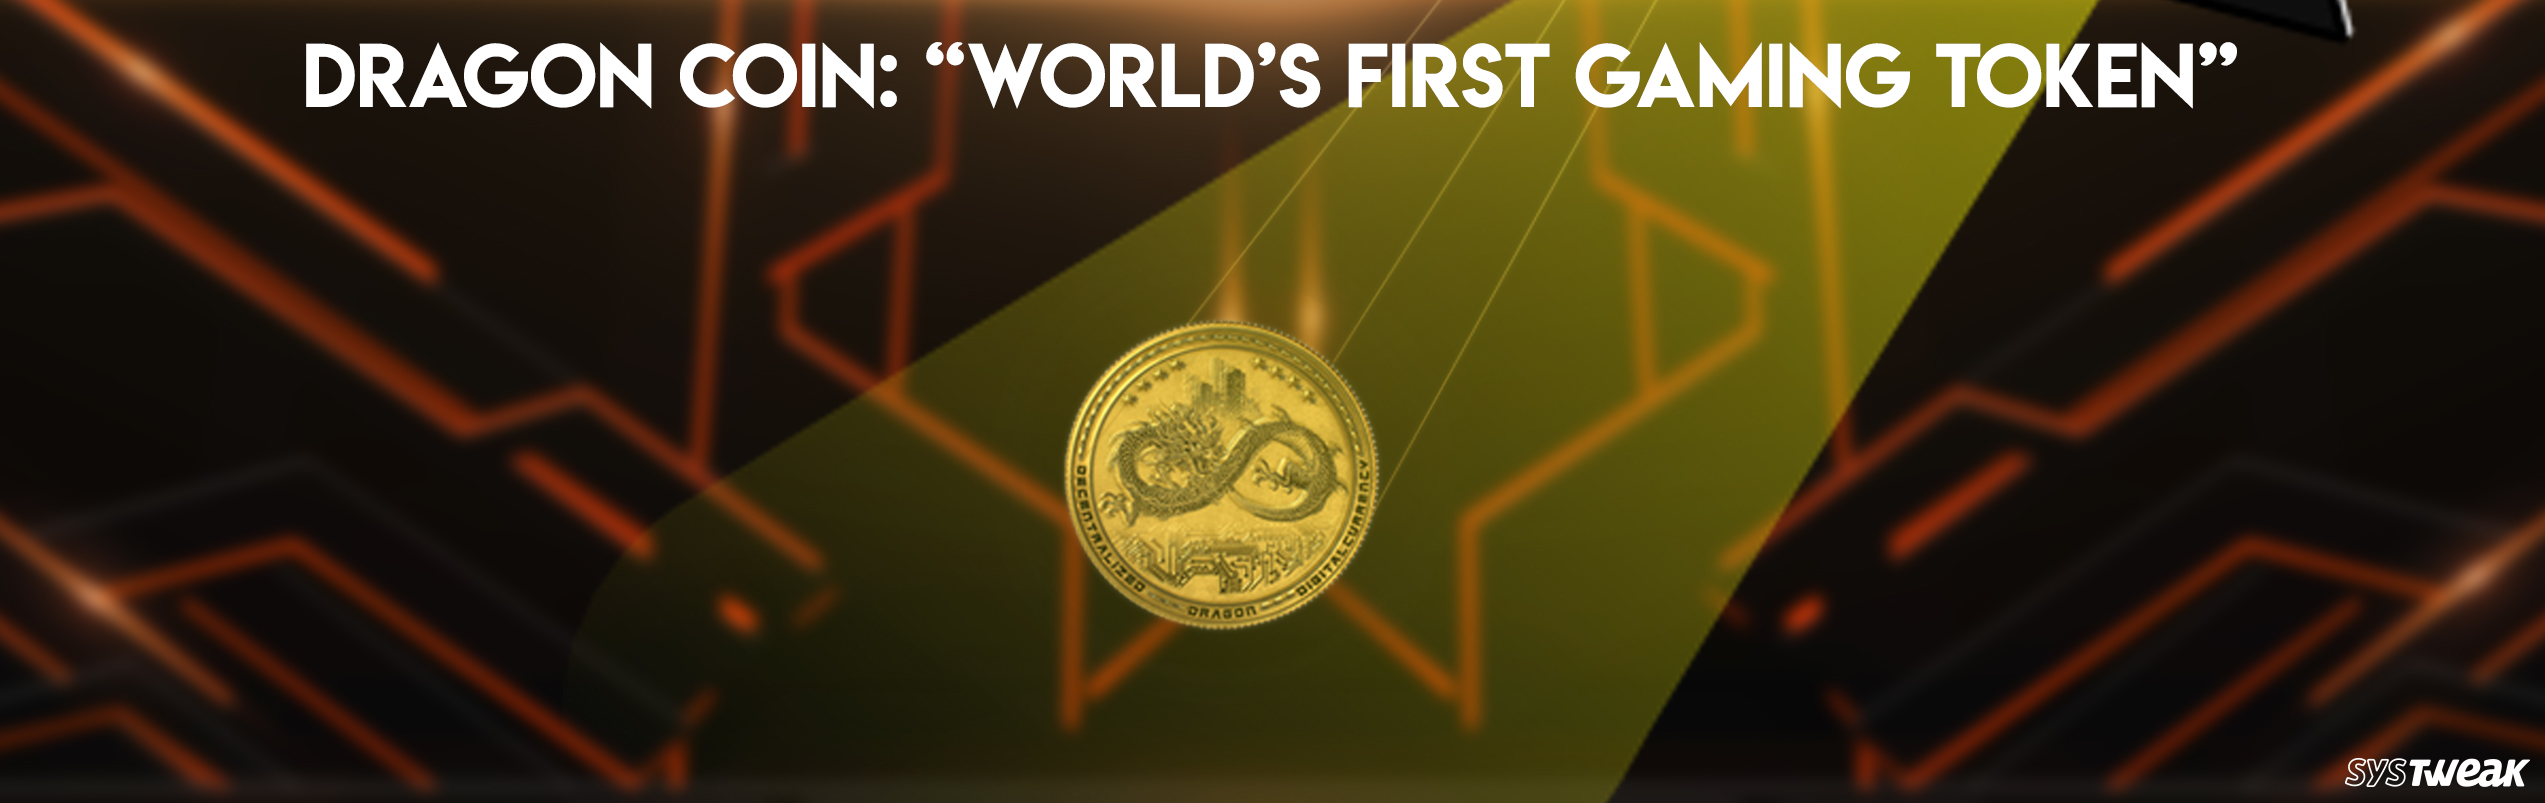 Dragon Coin: More Than Just a Gaming Currency